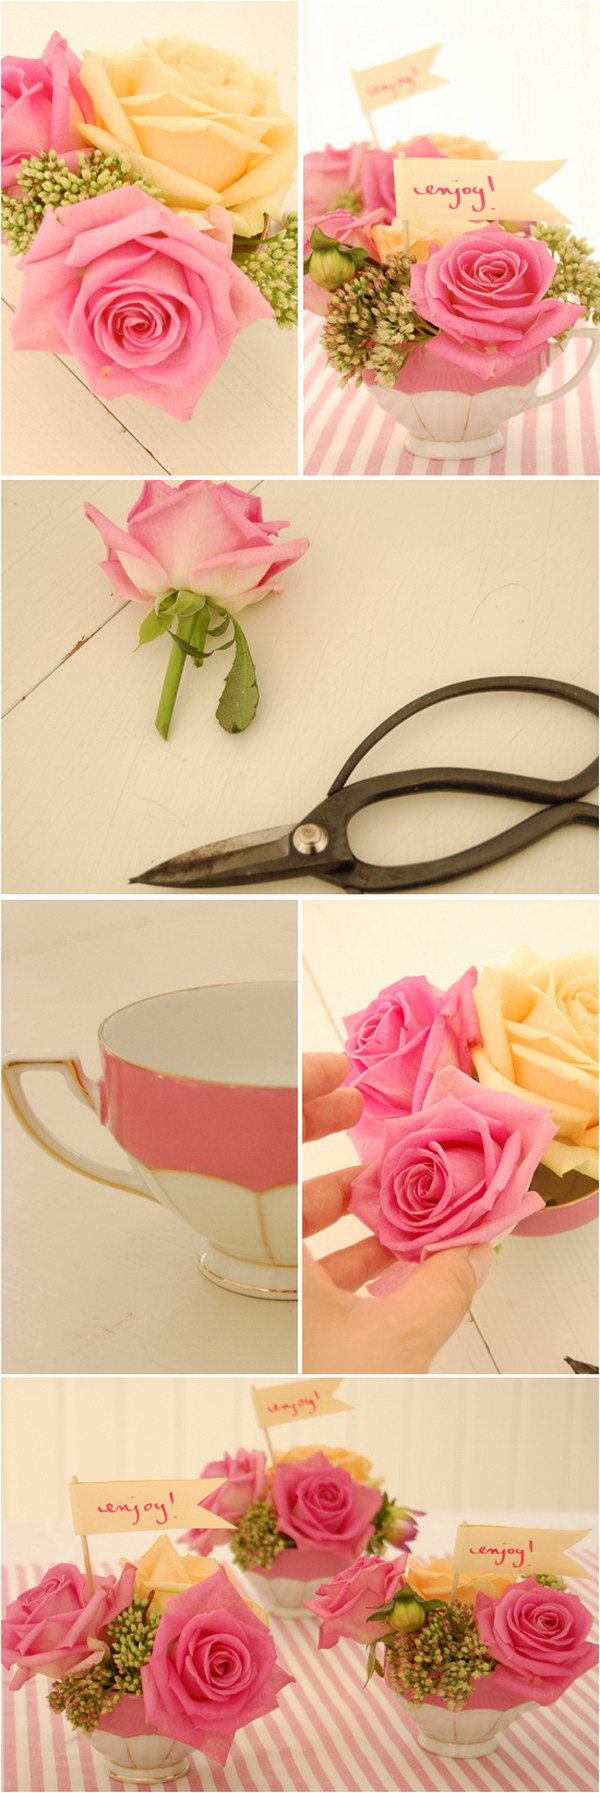 DIY Tea Cup Flower Arrangements